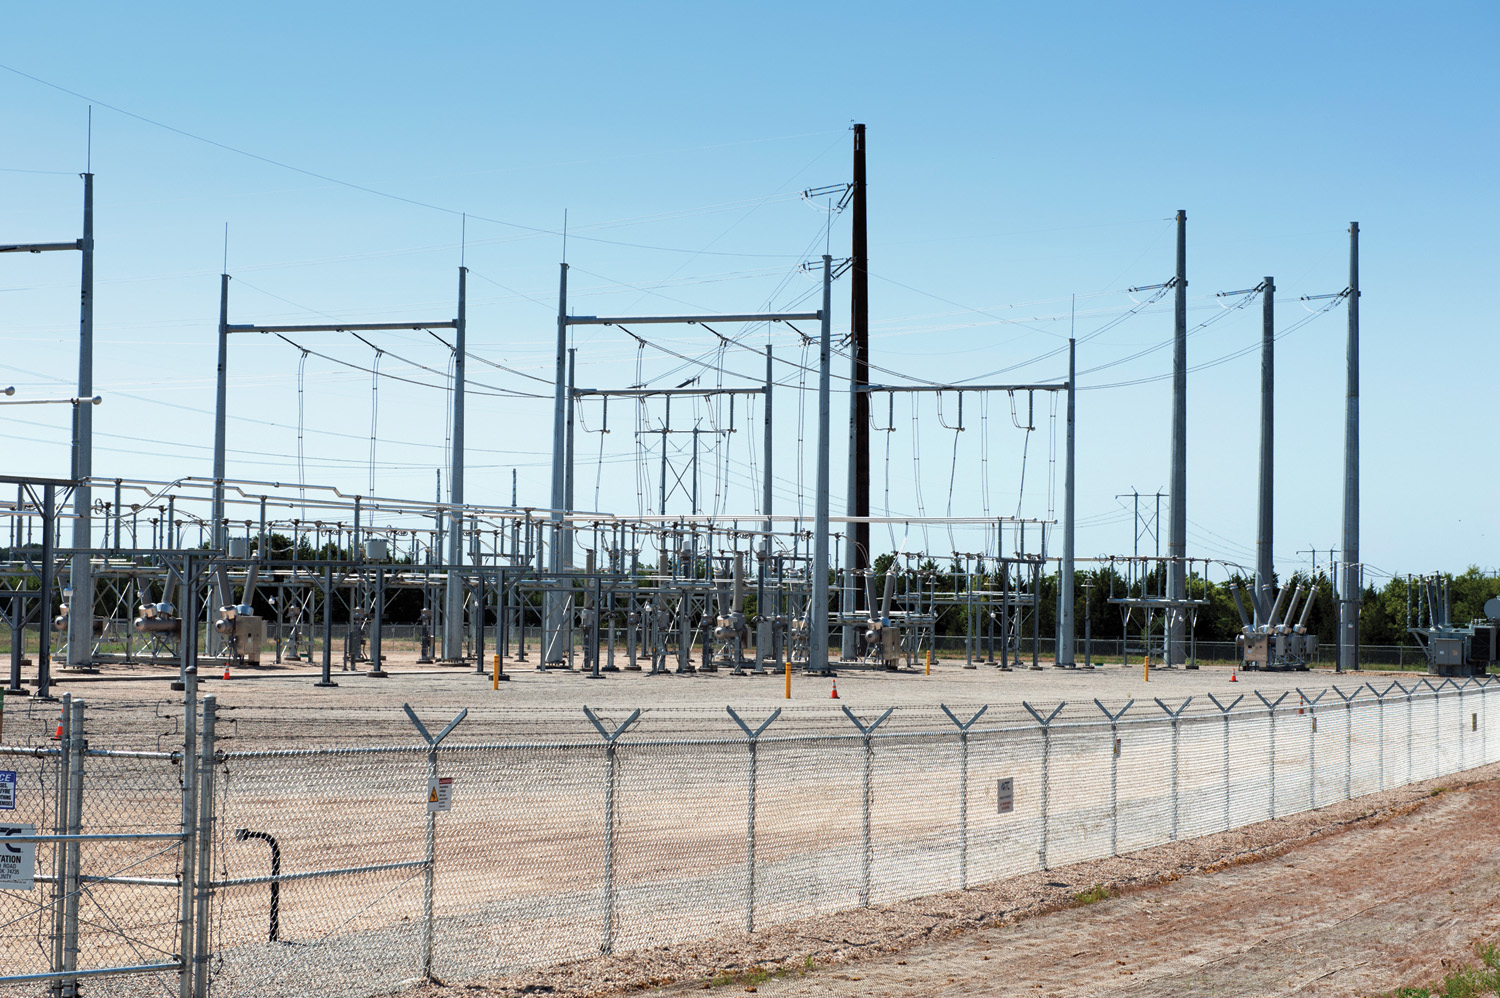 ITC Great Plains commissioned the Hugo-Valliant HVDC transmission line and substation project in Oklahoma.